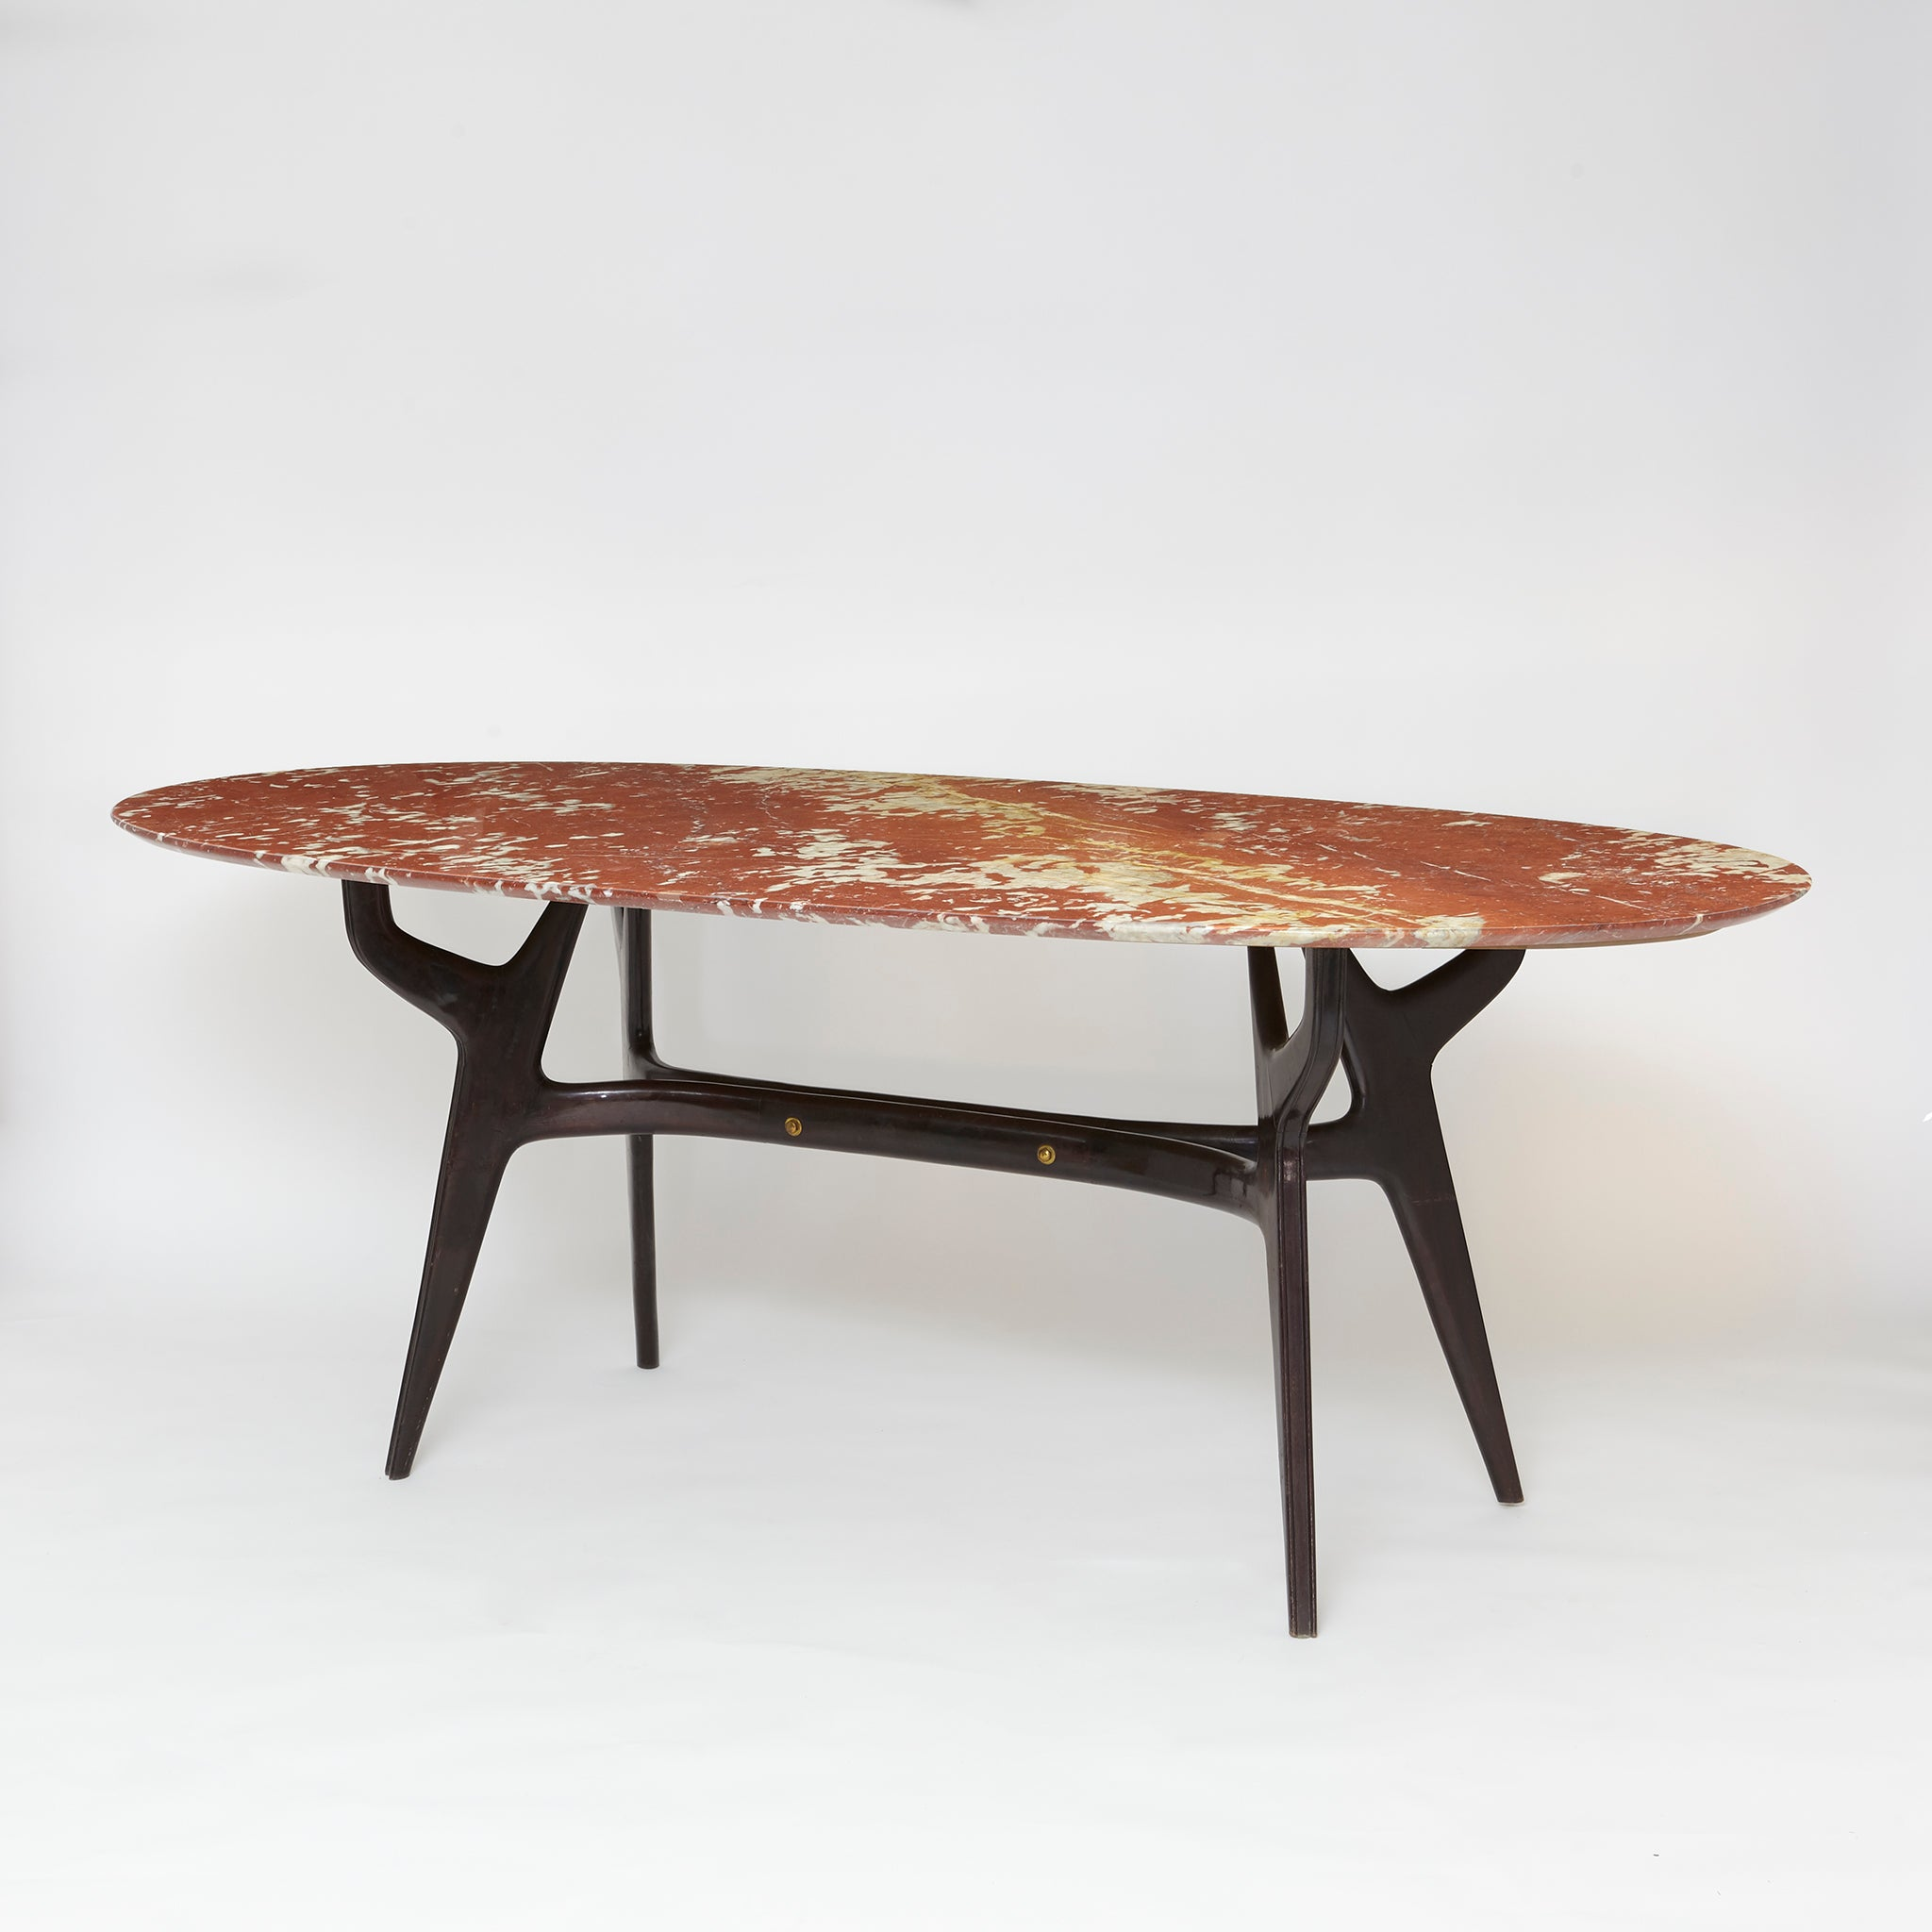 1960's dinning table with marble top by attributed to Ico Parisi.